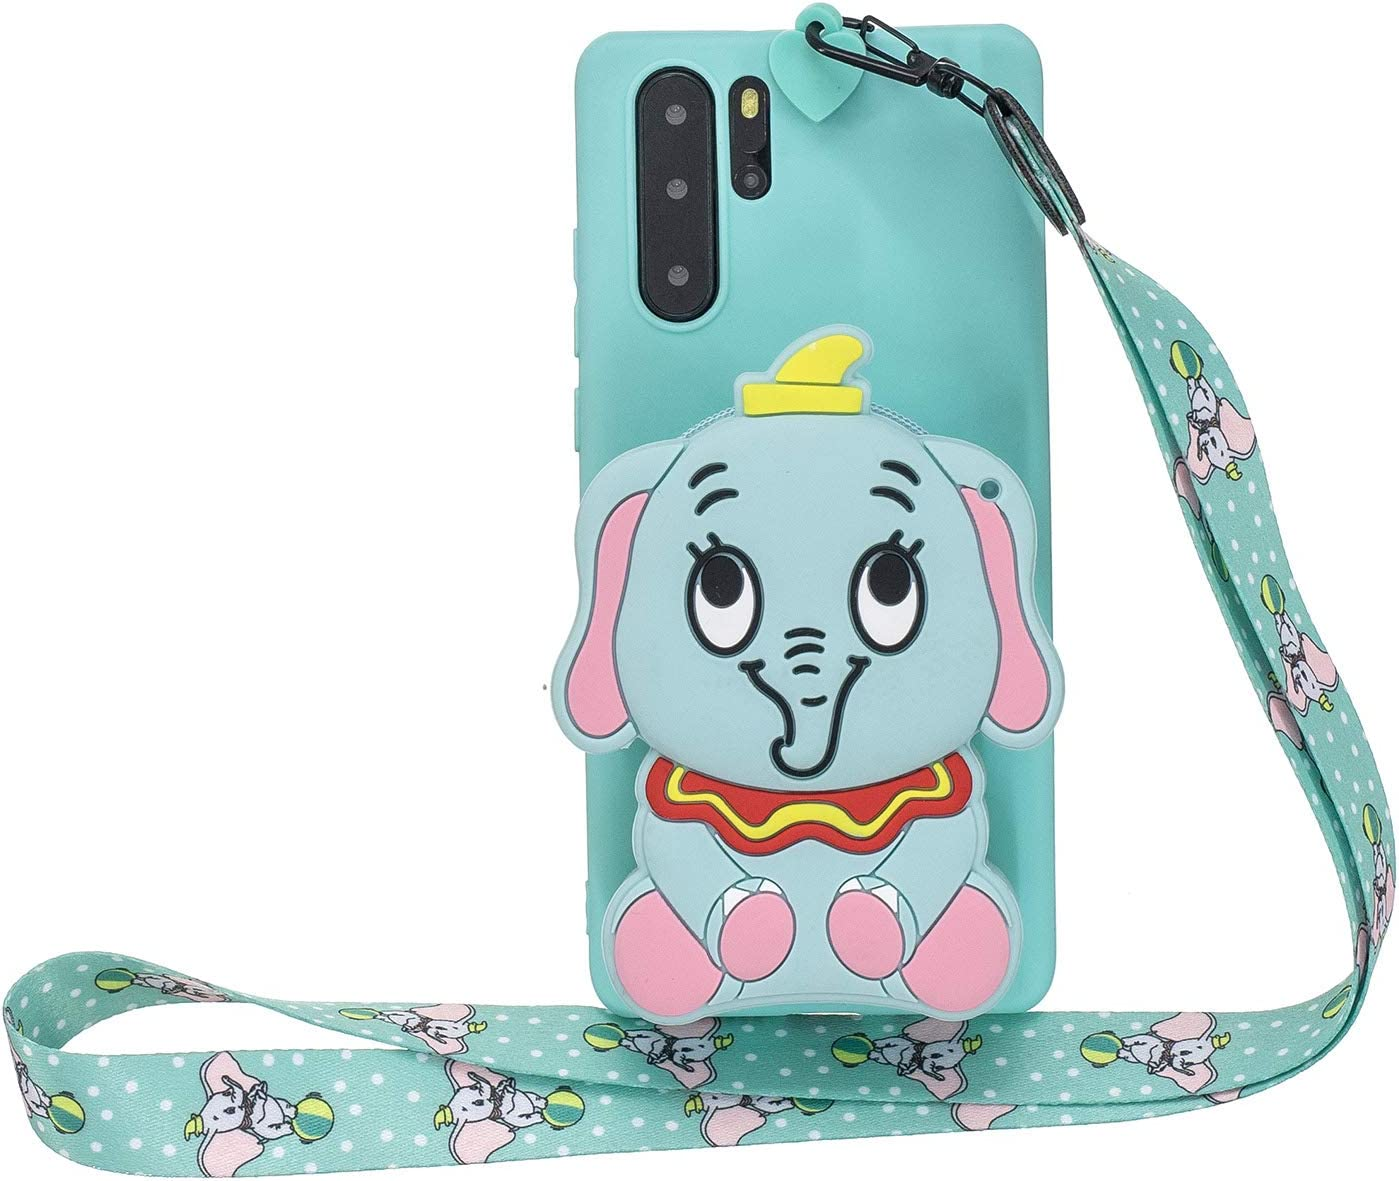 DAMONDY for Galaxy Note 10 Plus Case,3D Cartoon Cute Pocket Purse Zipper Wallet Stand Holder Cover Soft Silicone Protective Case with Lanyard Strap for Samsung Galaxy Note 10 Plus-Blue Elephant